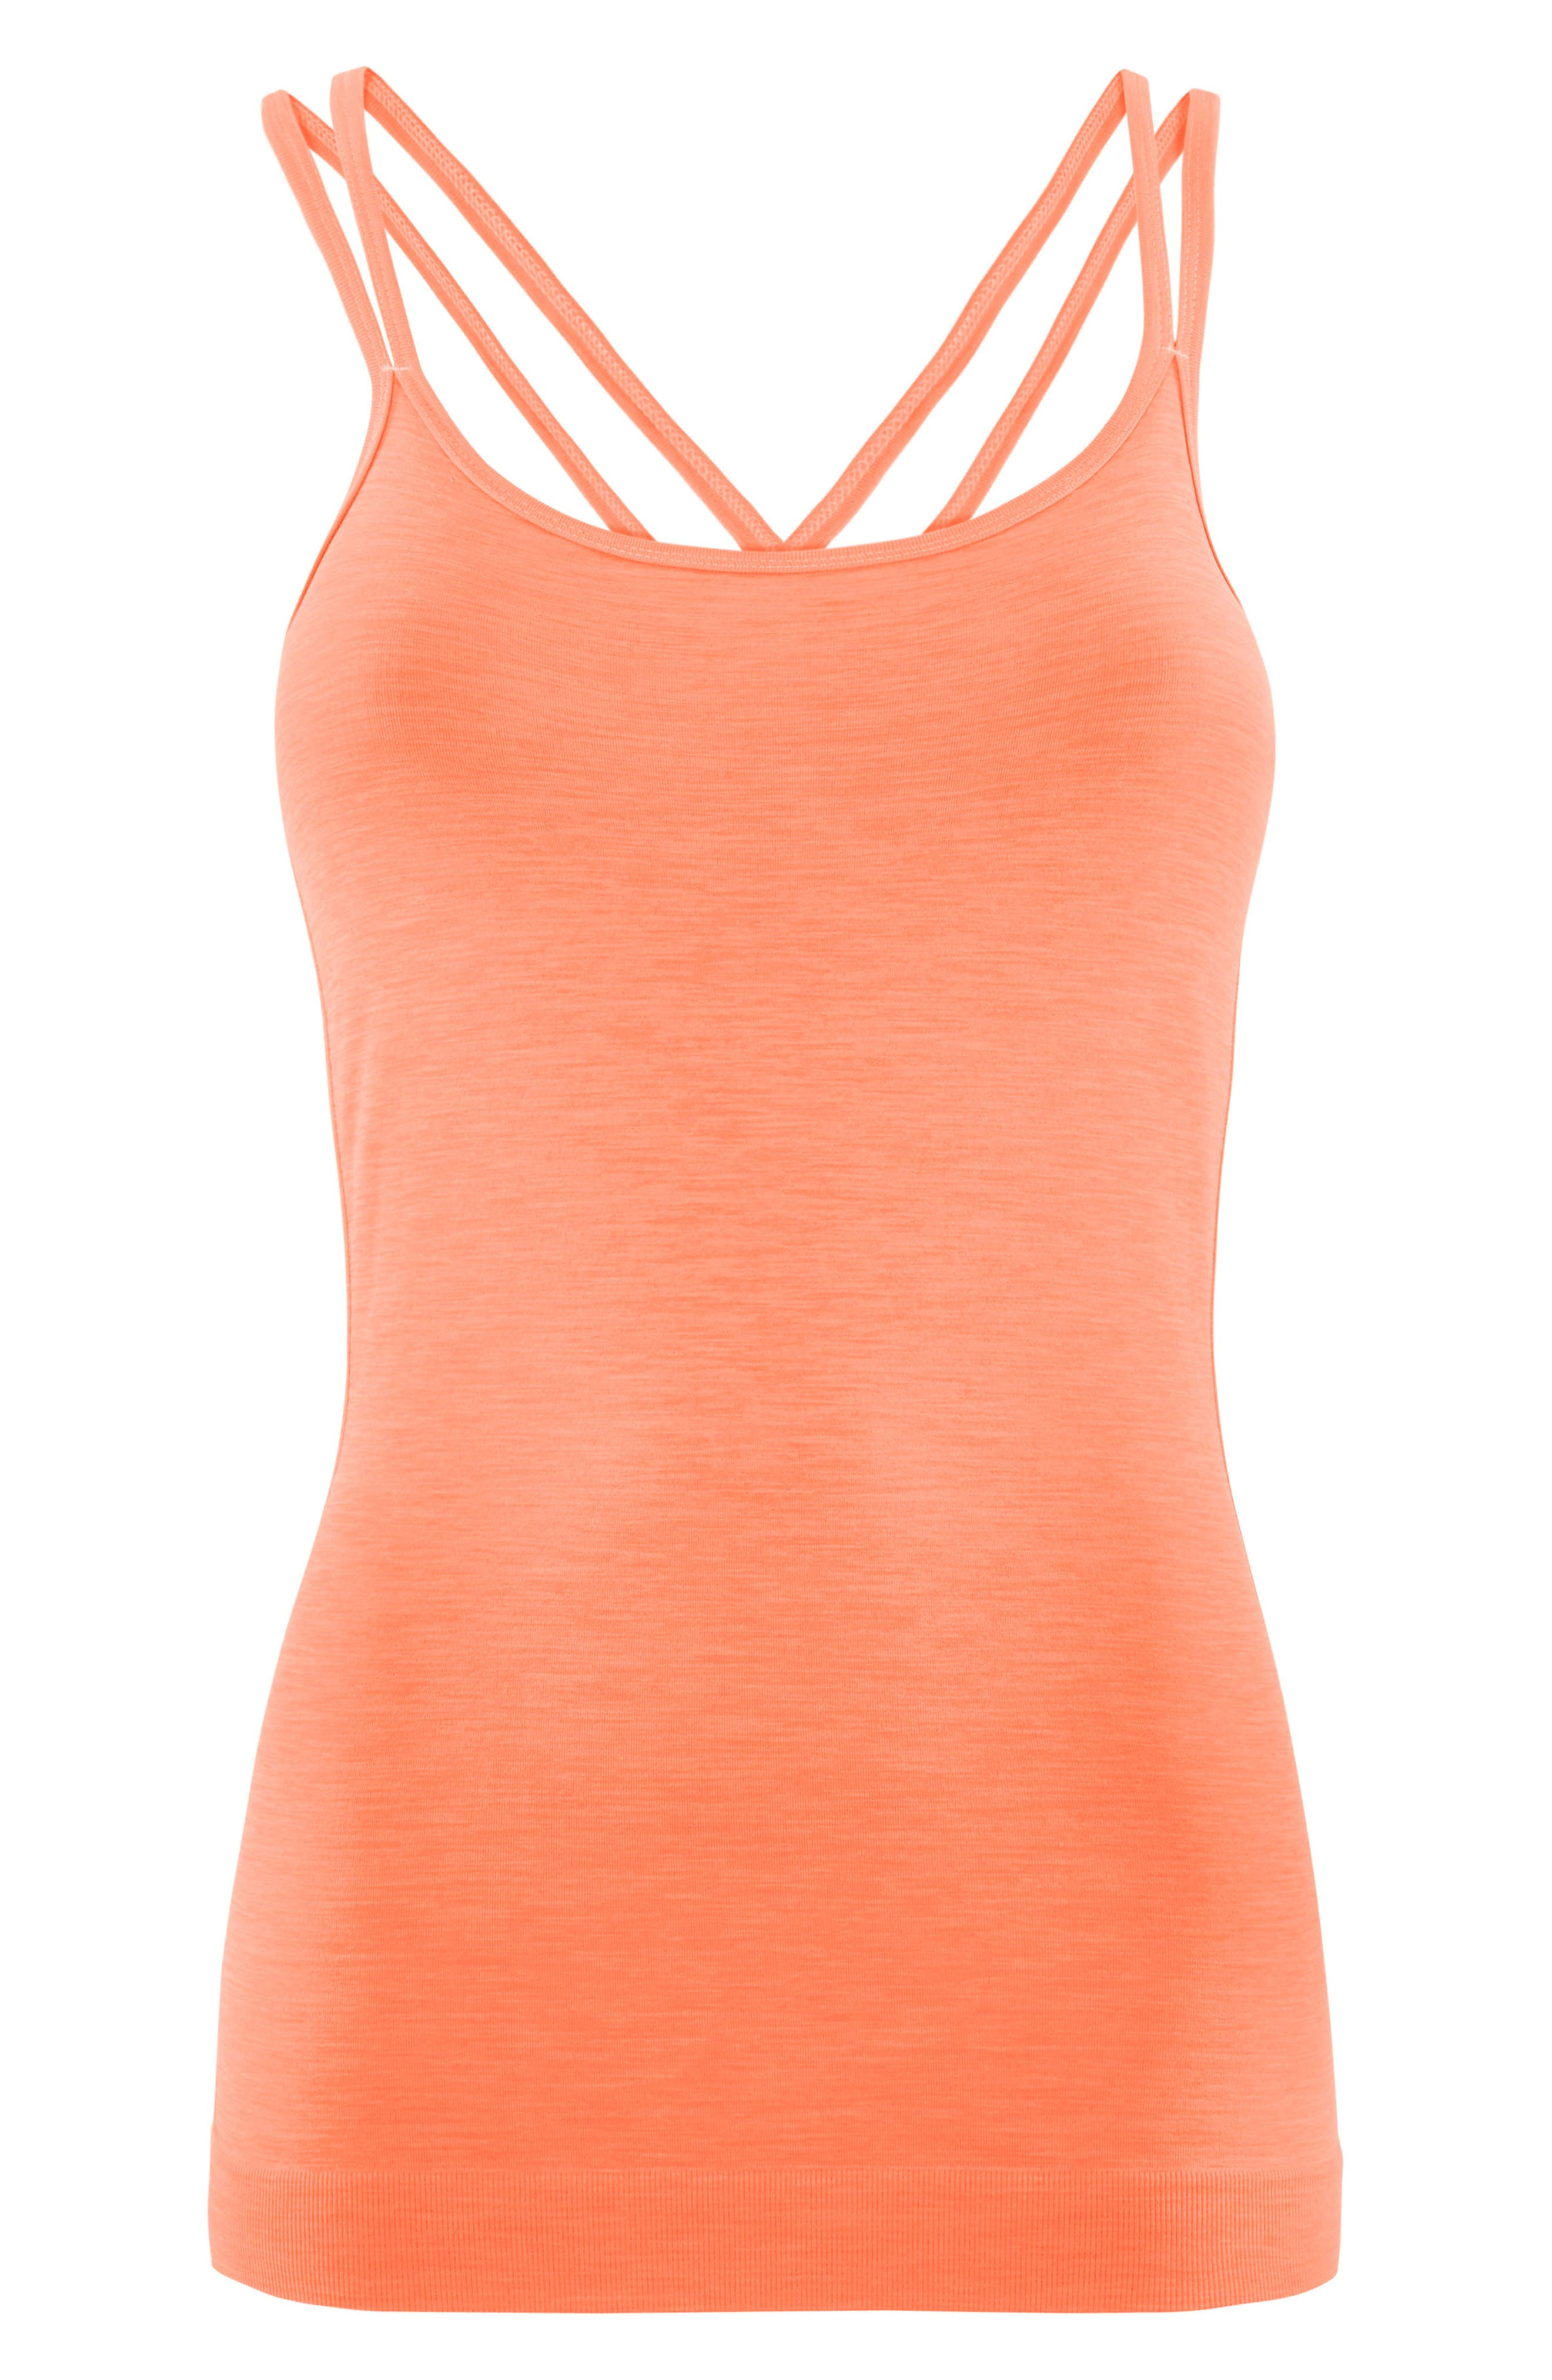 Namaska Yoga Tank,                             Alternate thumbnail 10, color,